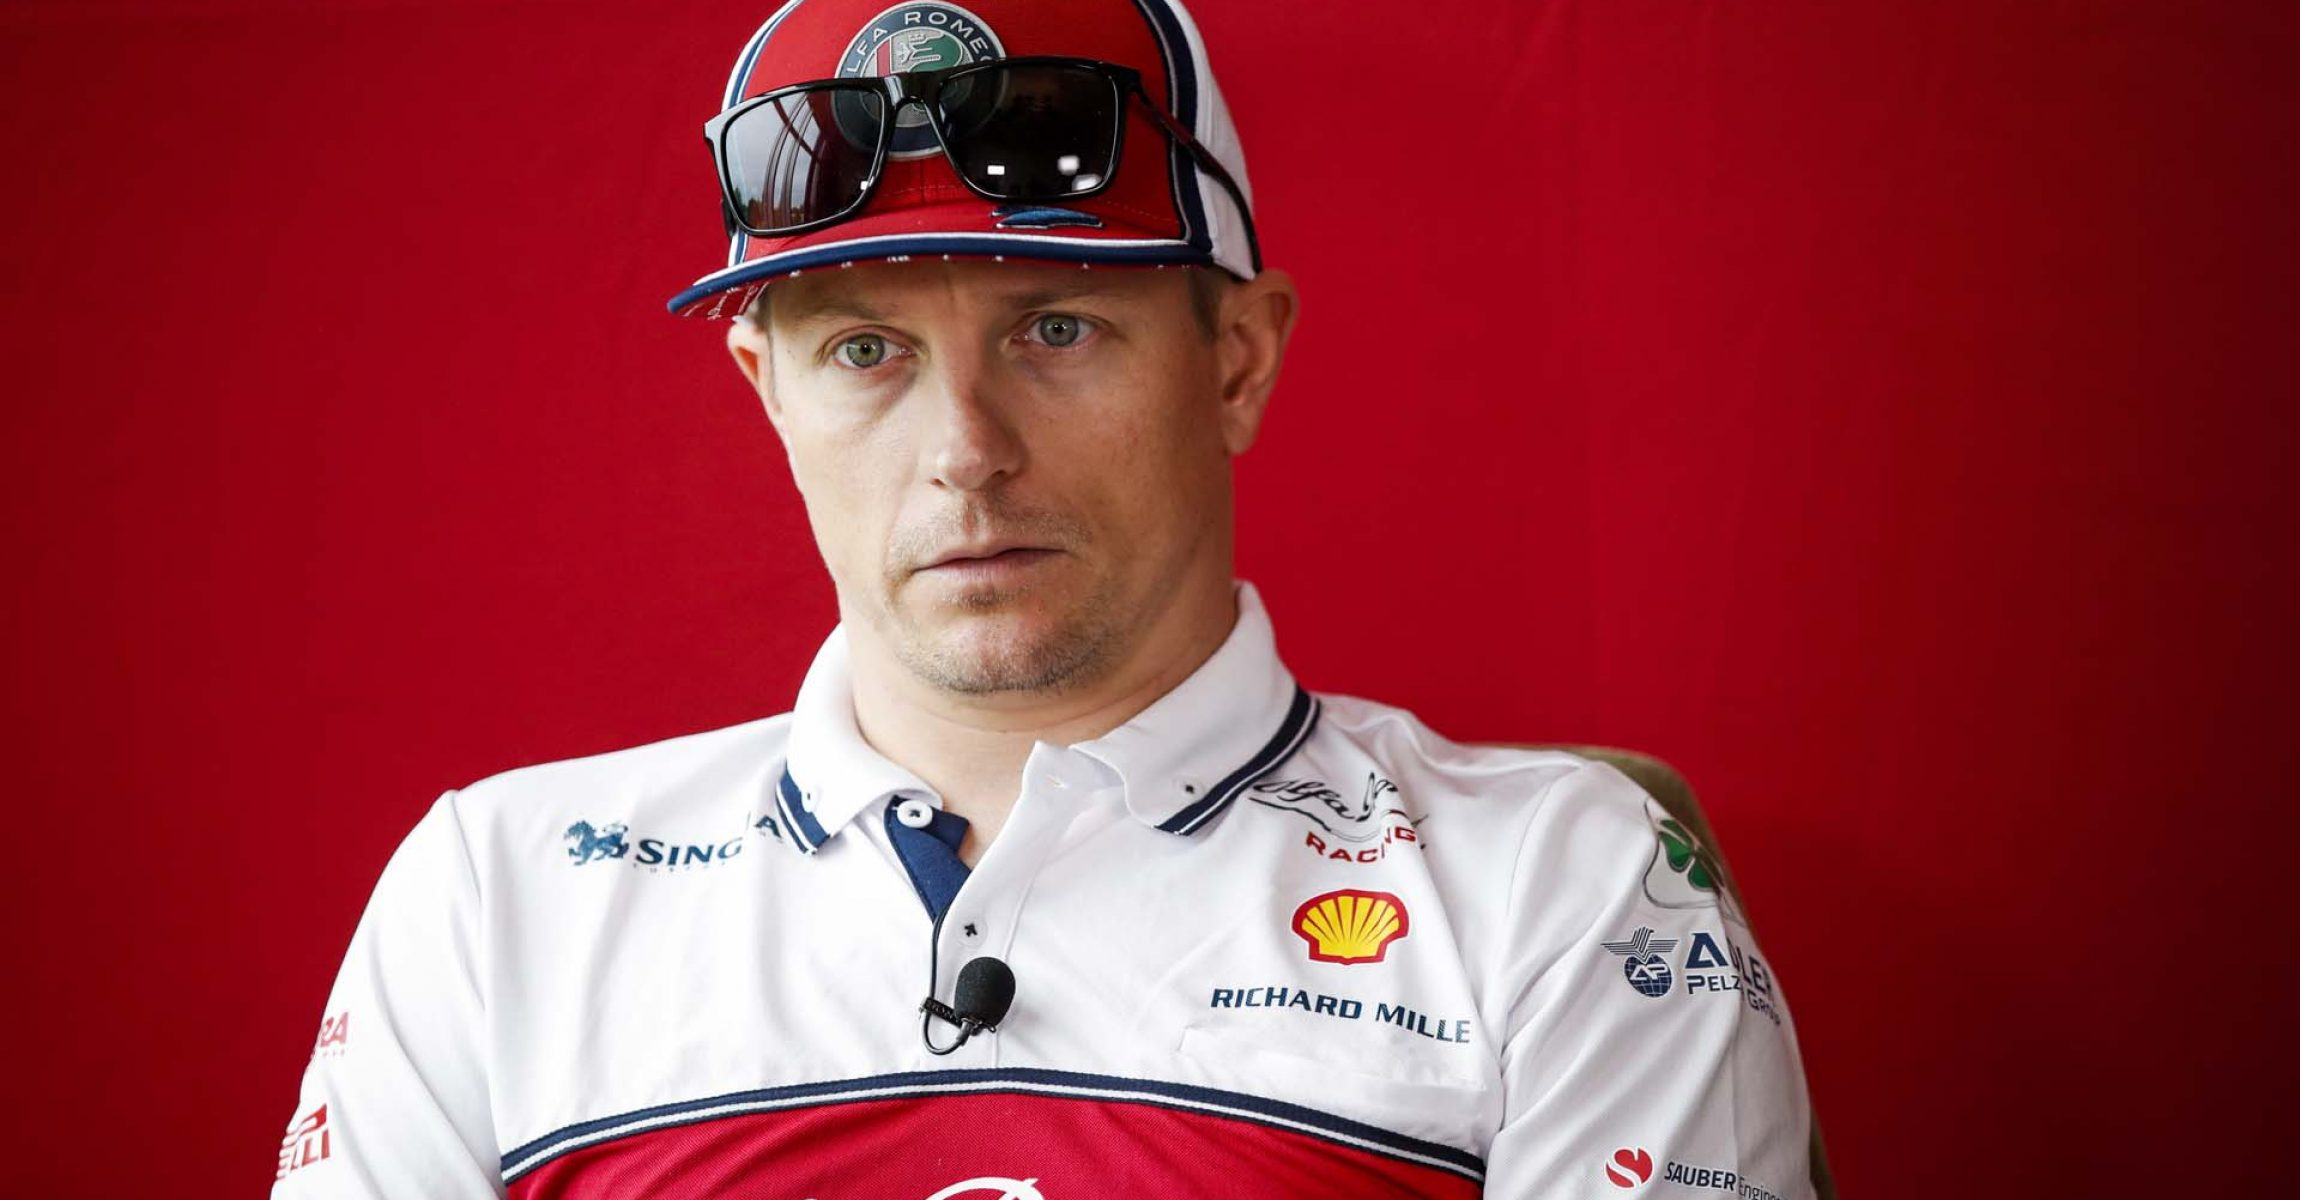 RAIKKONEN Kimi Räikkönen (fin), Alfa Romeo Racing C38, portrait during the 2019 Formula One World Championship, Japan Grand Prix from October 11 to 13 at Suzuka - Photo Florent Gooden / DPPI